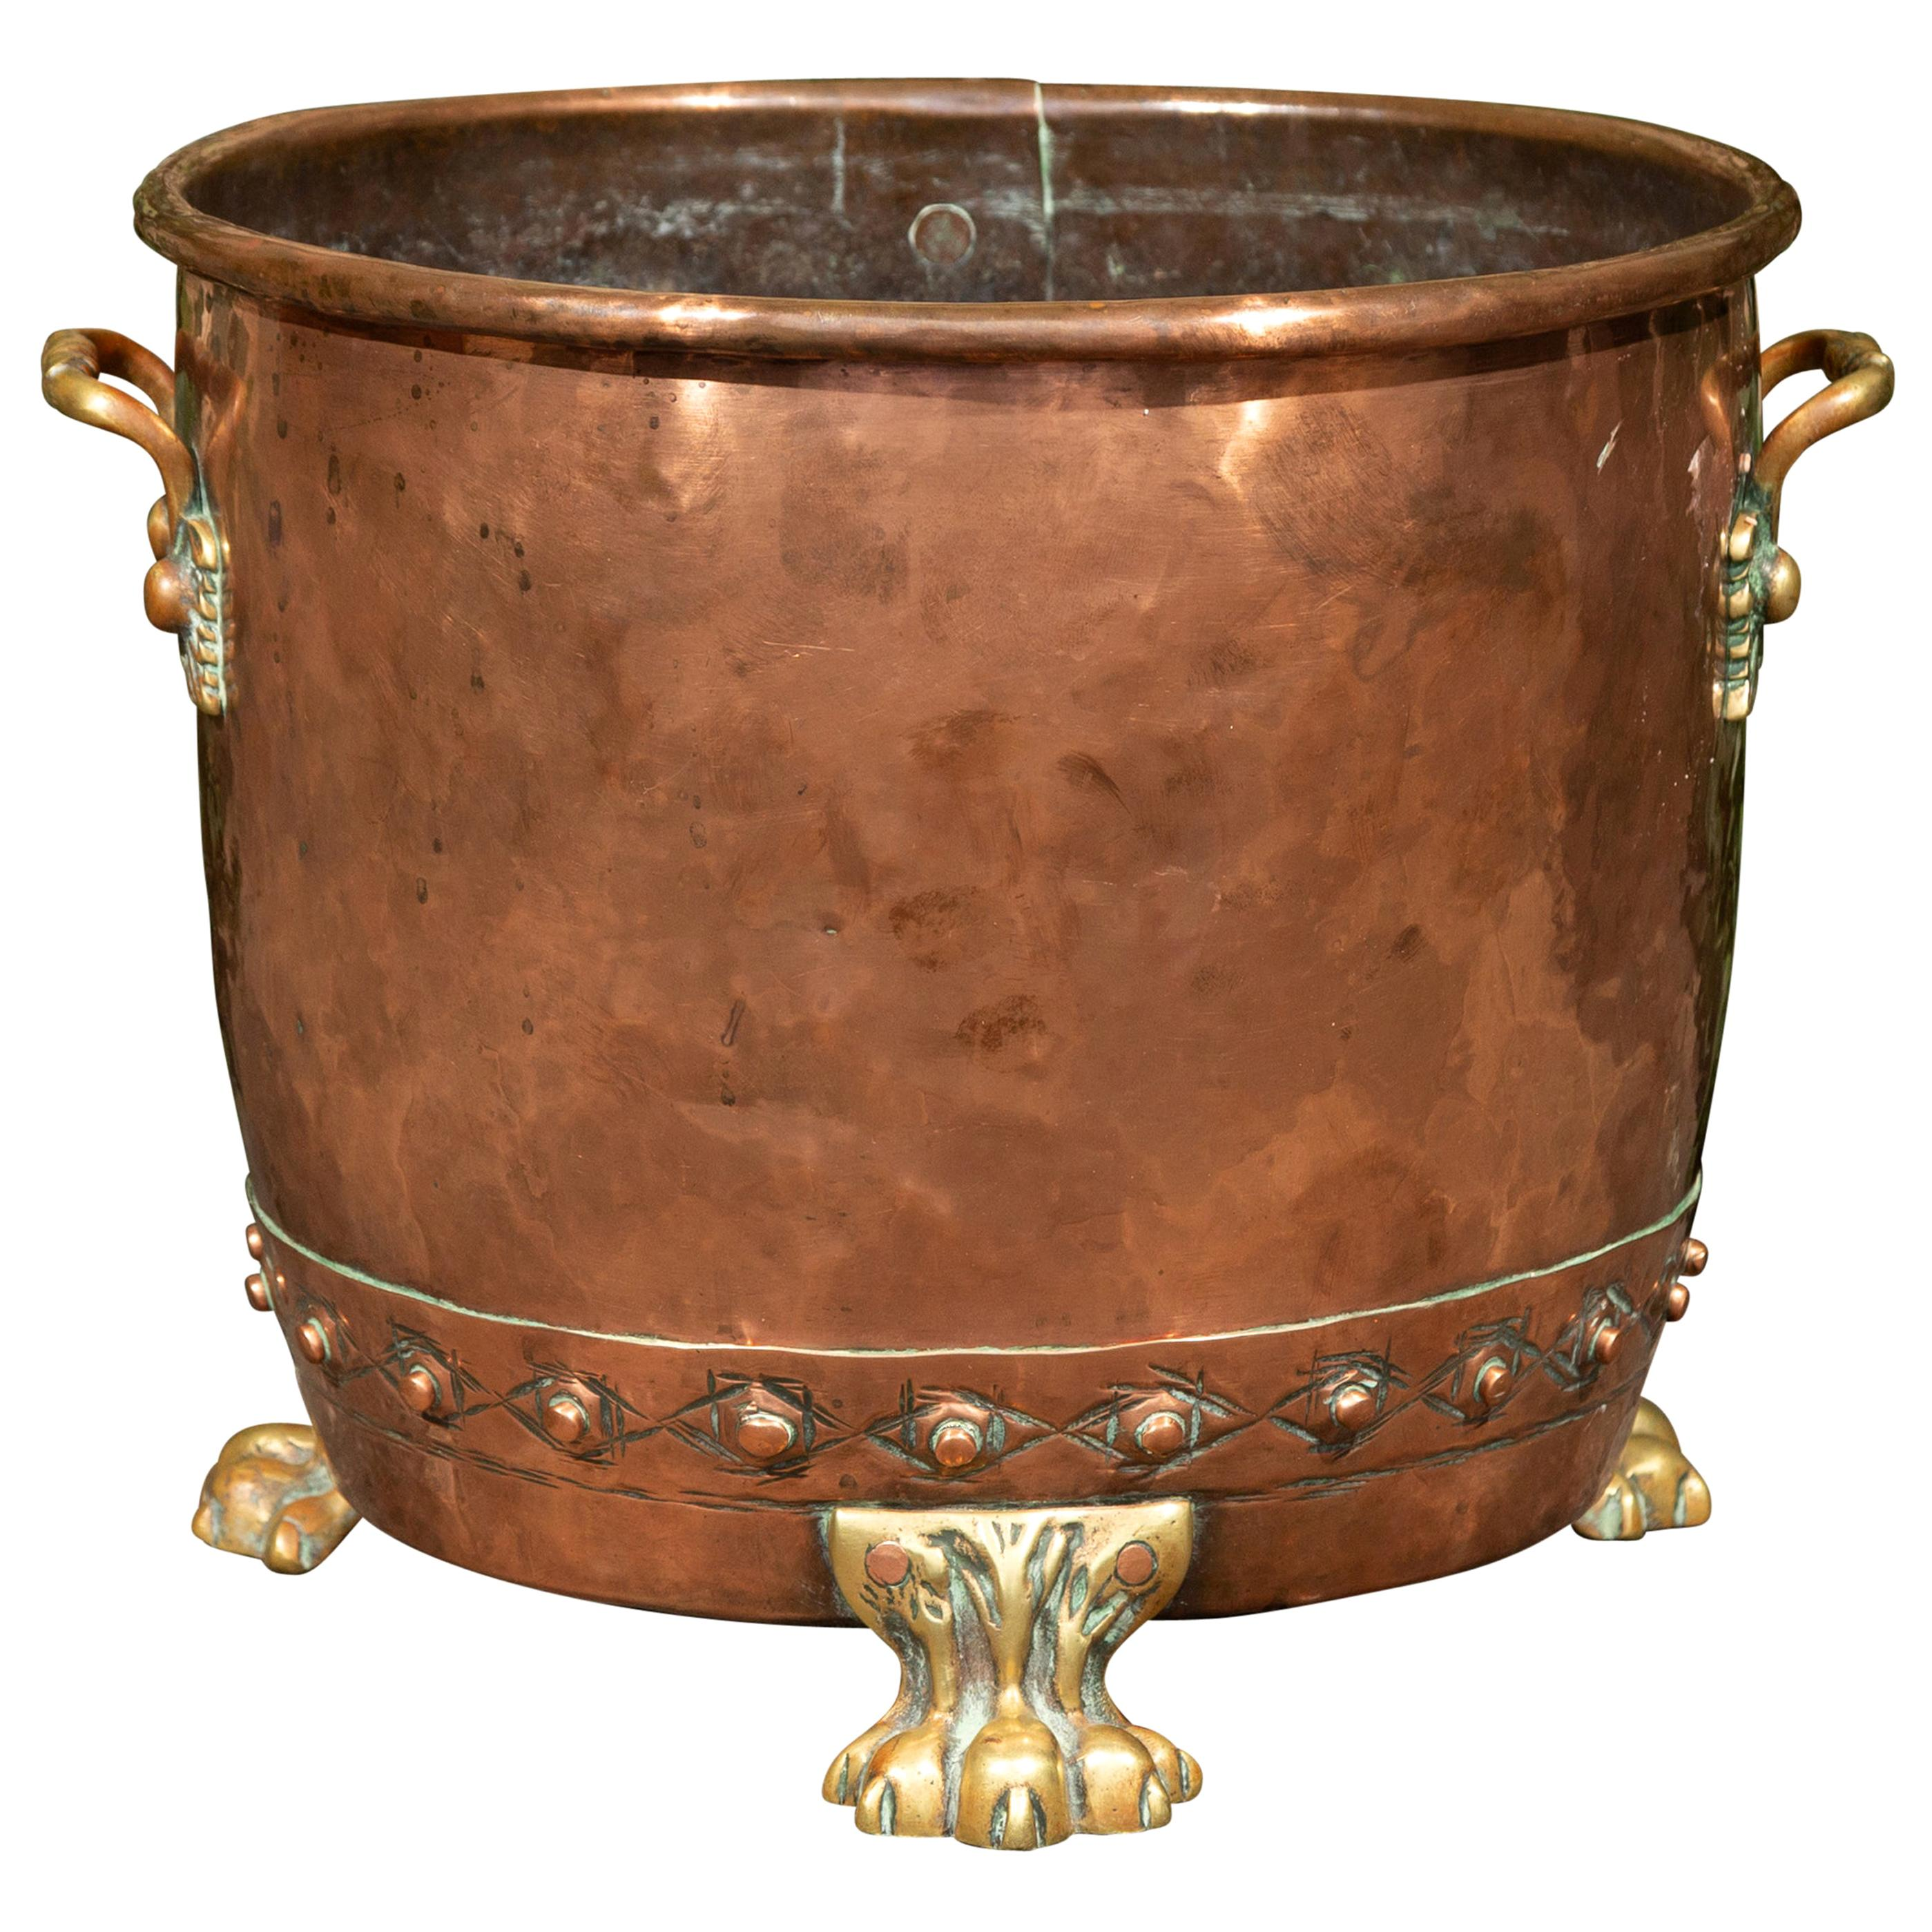 English Turn of the Century 1900s Copper and Brass Planter with Lion Paw Feet